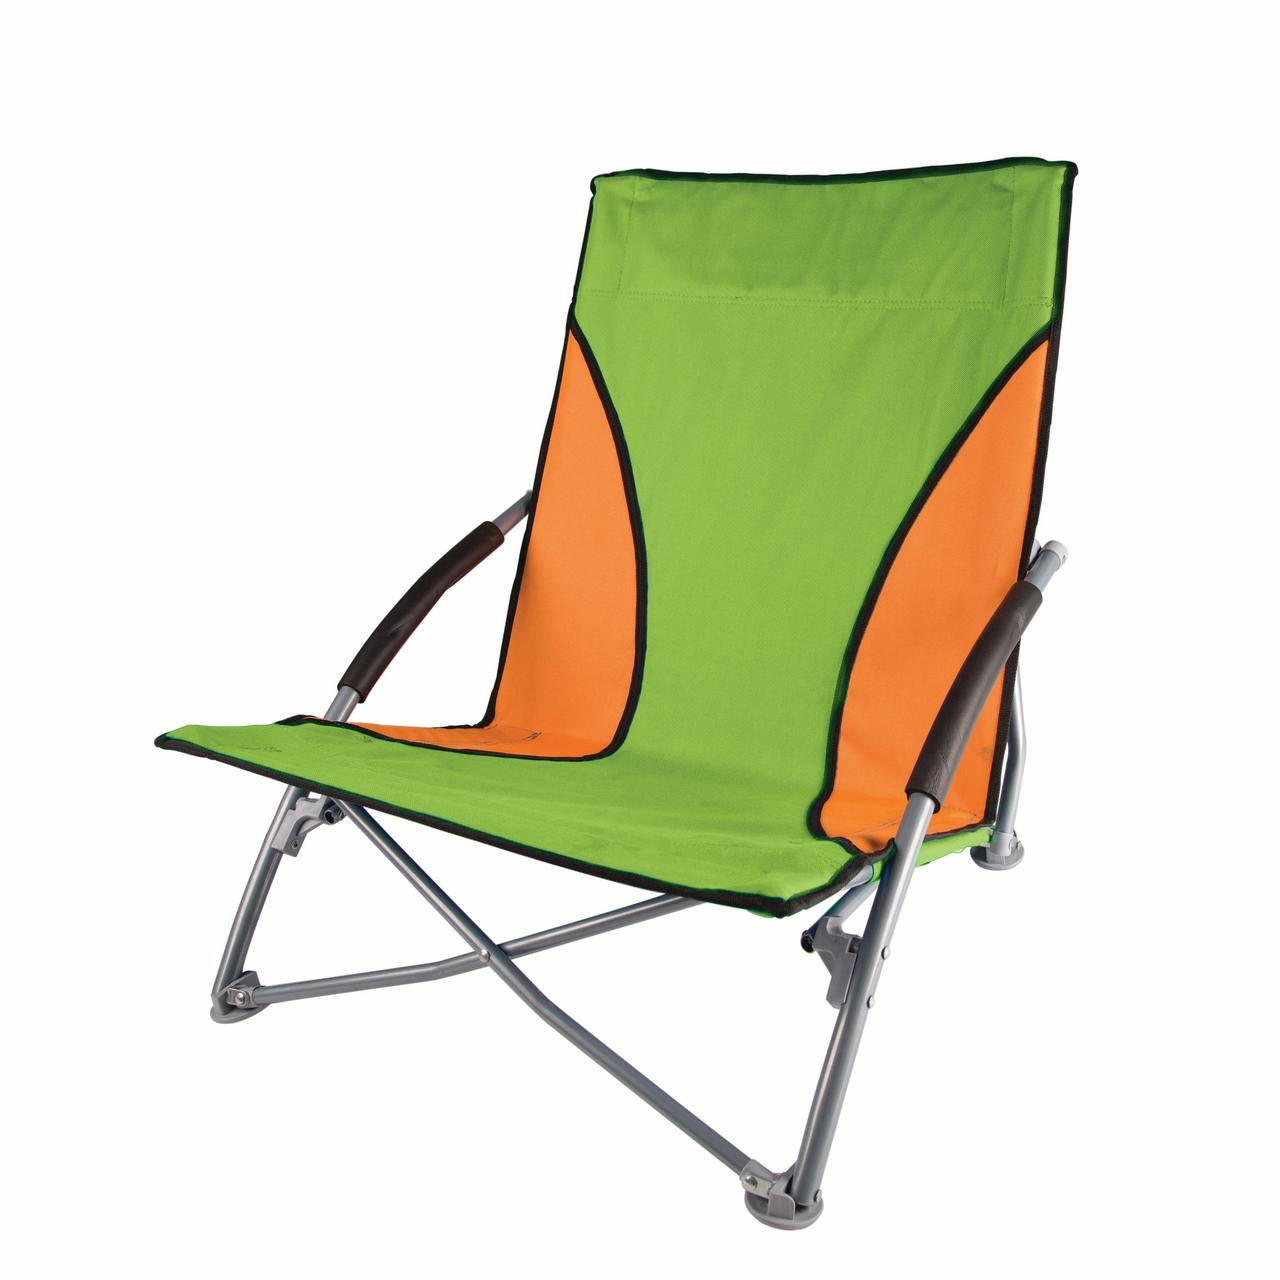 Stansport Low Profile Sand Chair - Green/Orange